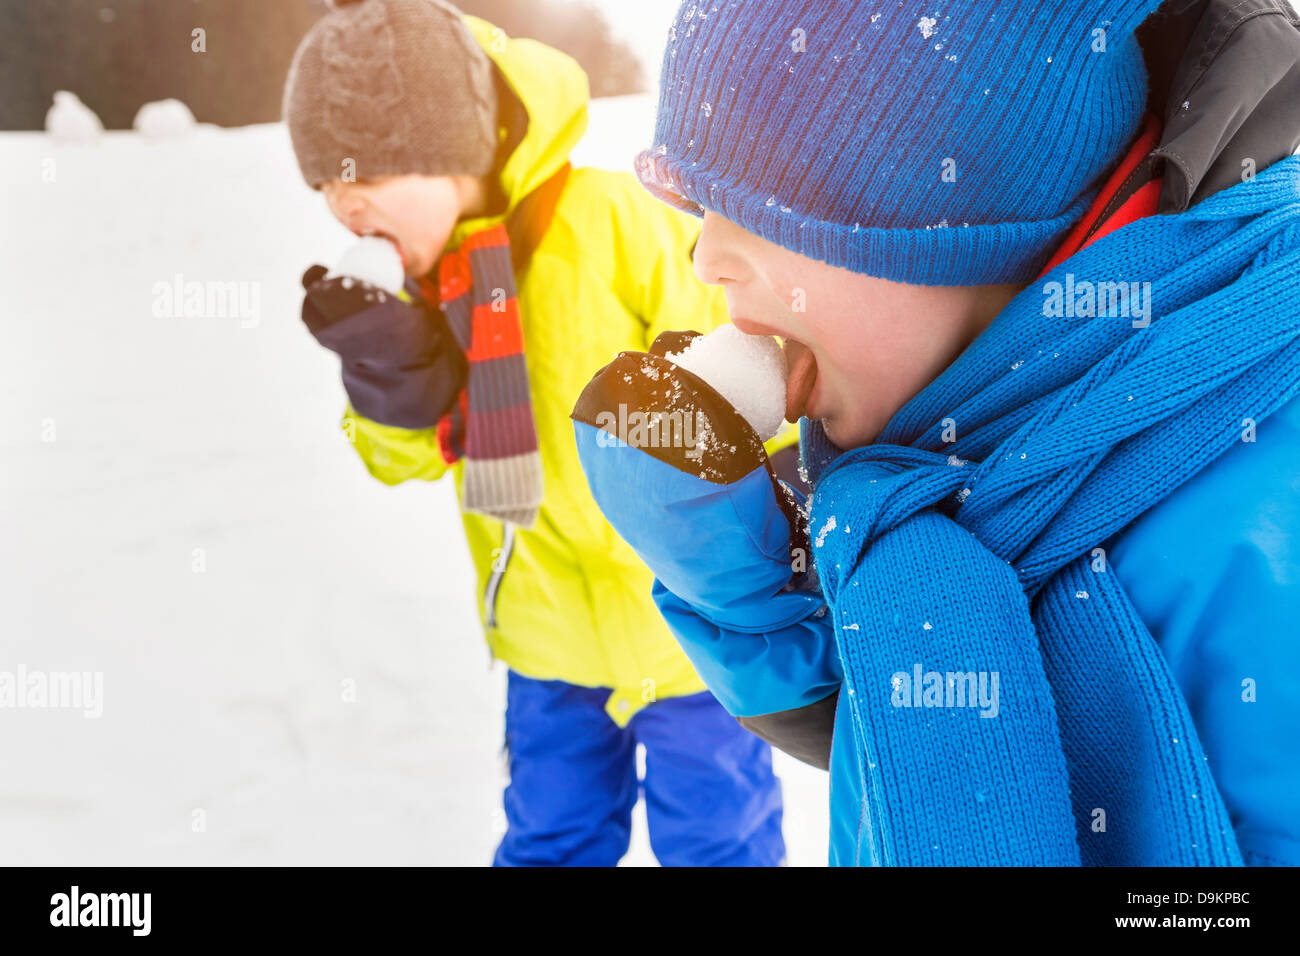 Two boys licking snowballs - Stock Image